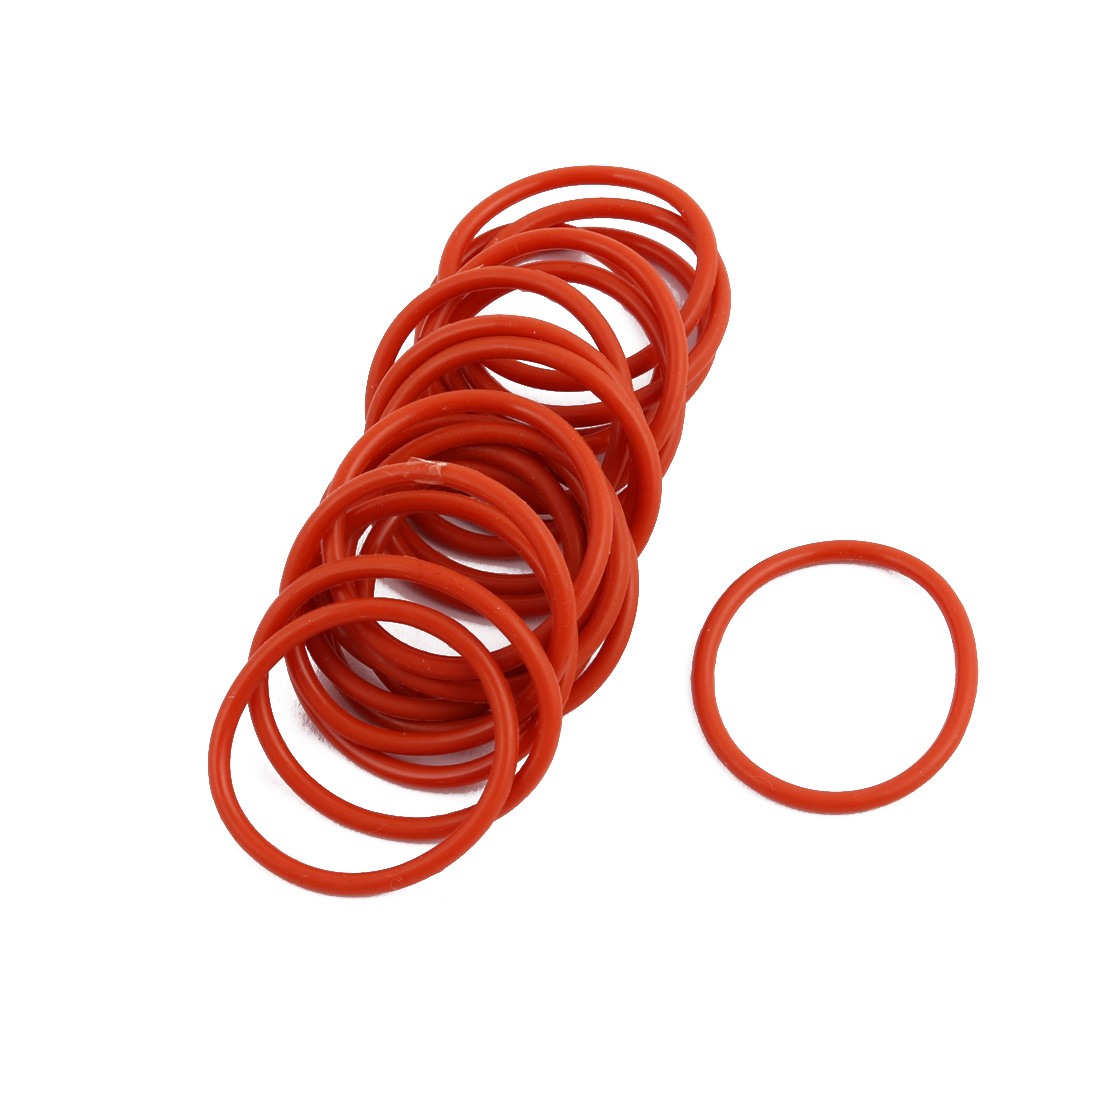 20pcs Red Round Nitrile Butadiene Rubber NBR O-Ring 25mm OD 1.9mm Width